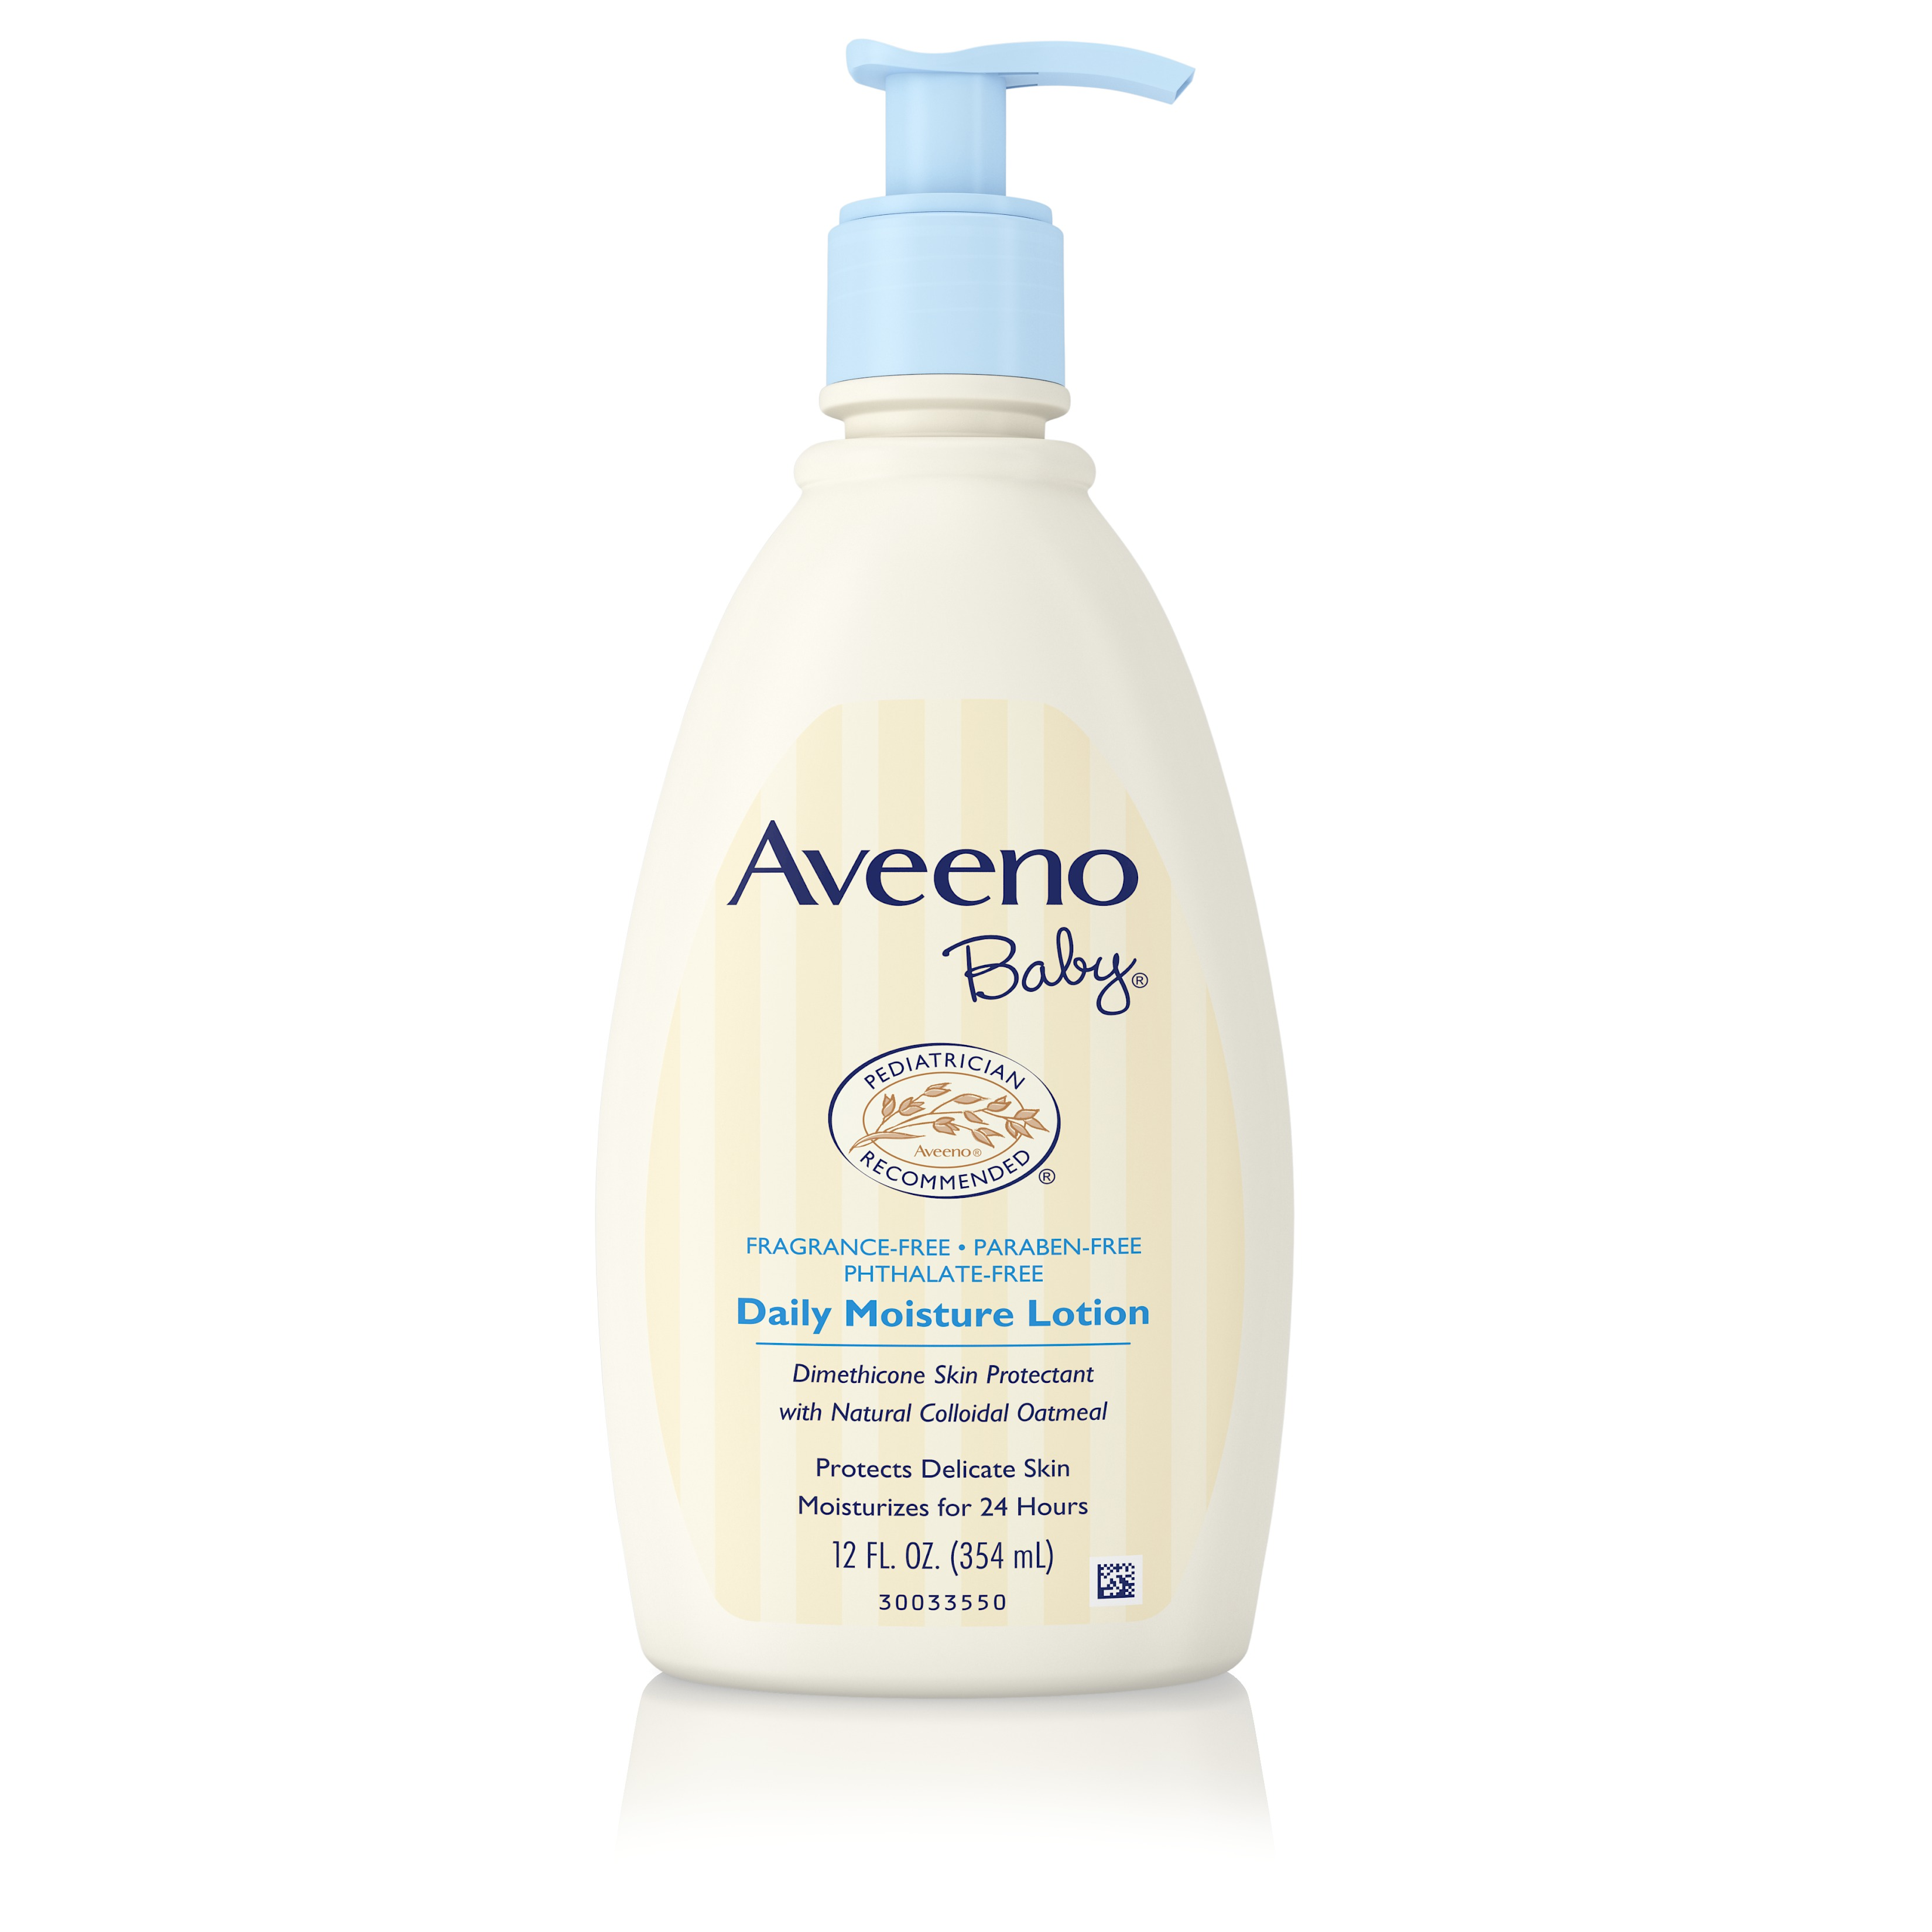 Aveeno Baby Daily Moisture Lotion with Natural Colloidal Oatmeal, 18 fl. oz by Johnson & Johnson